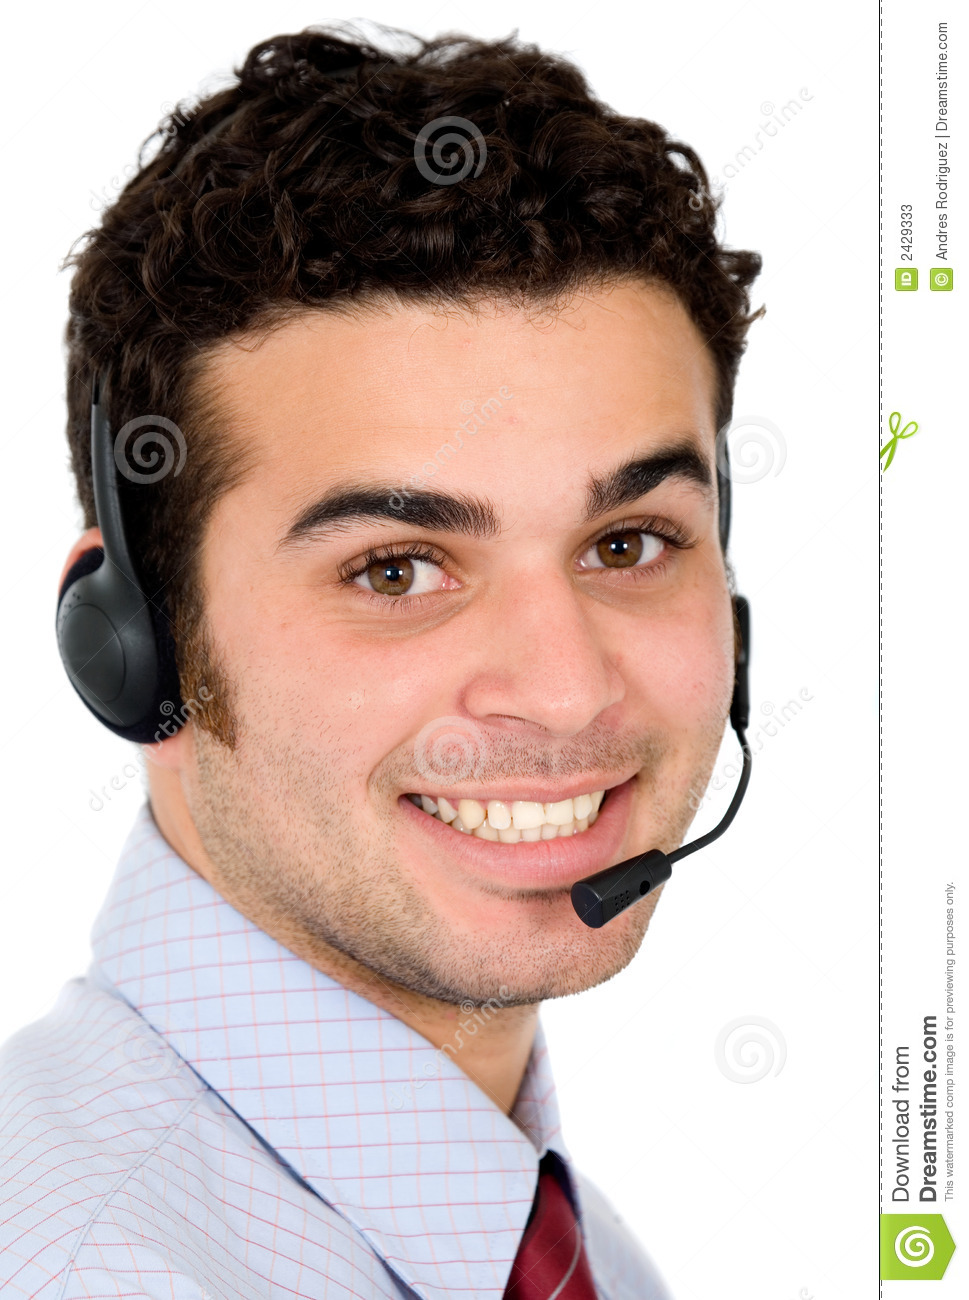 ... services plans and devices 155 or 800 155 overseas 971 55 5678 155